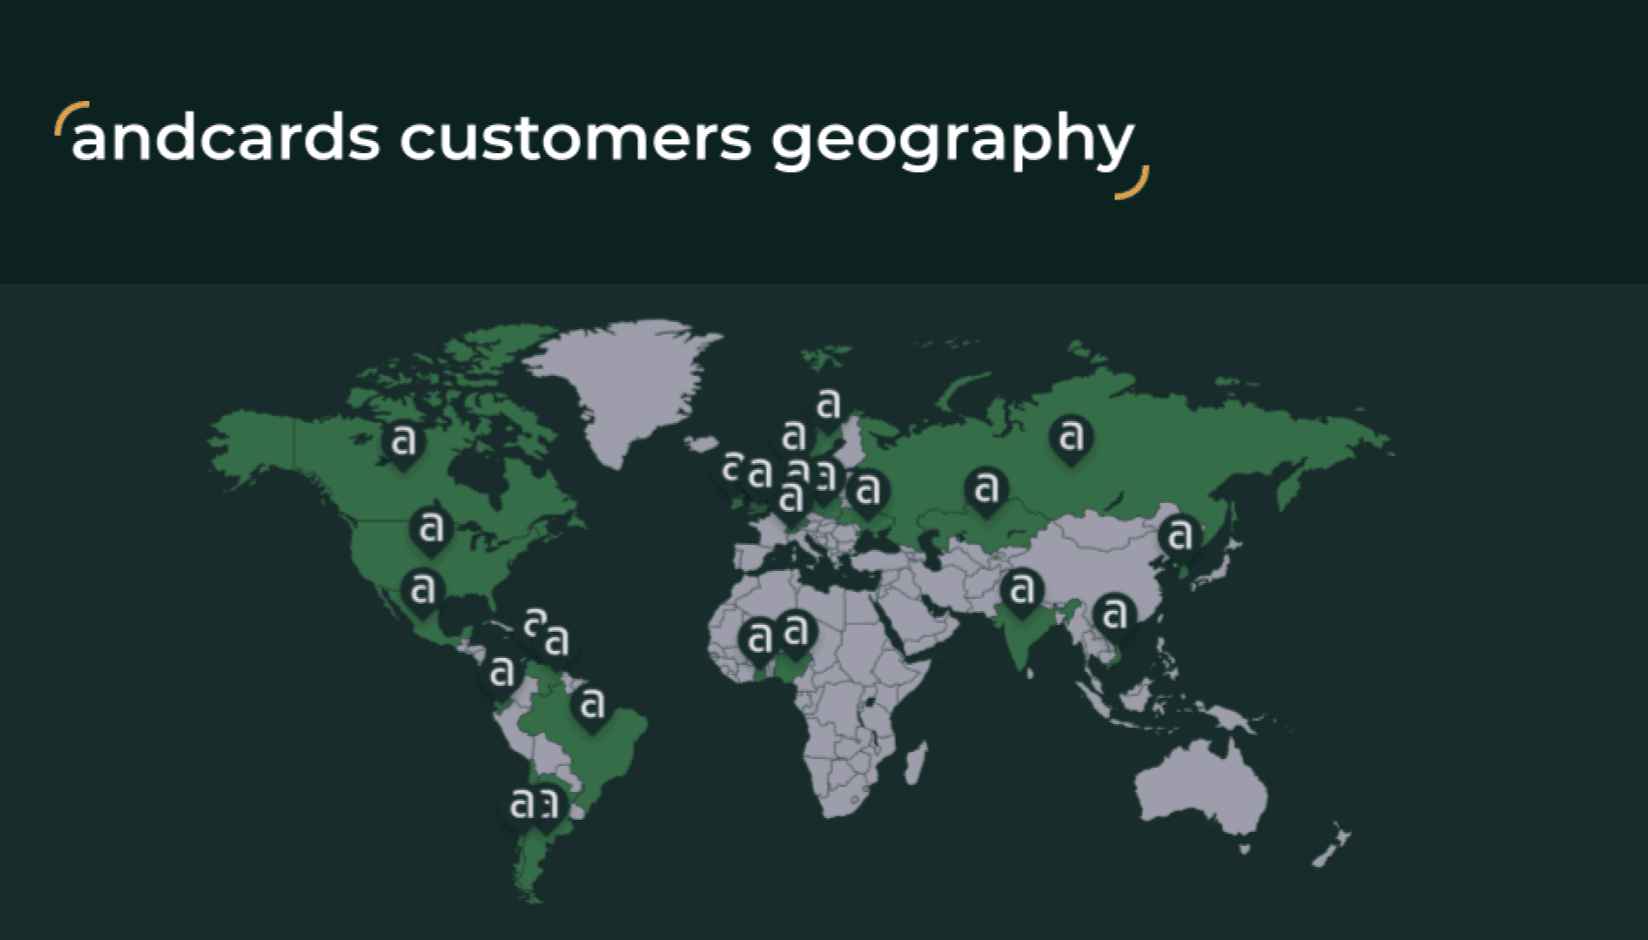 andcards customers geography map